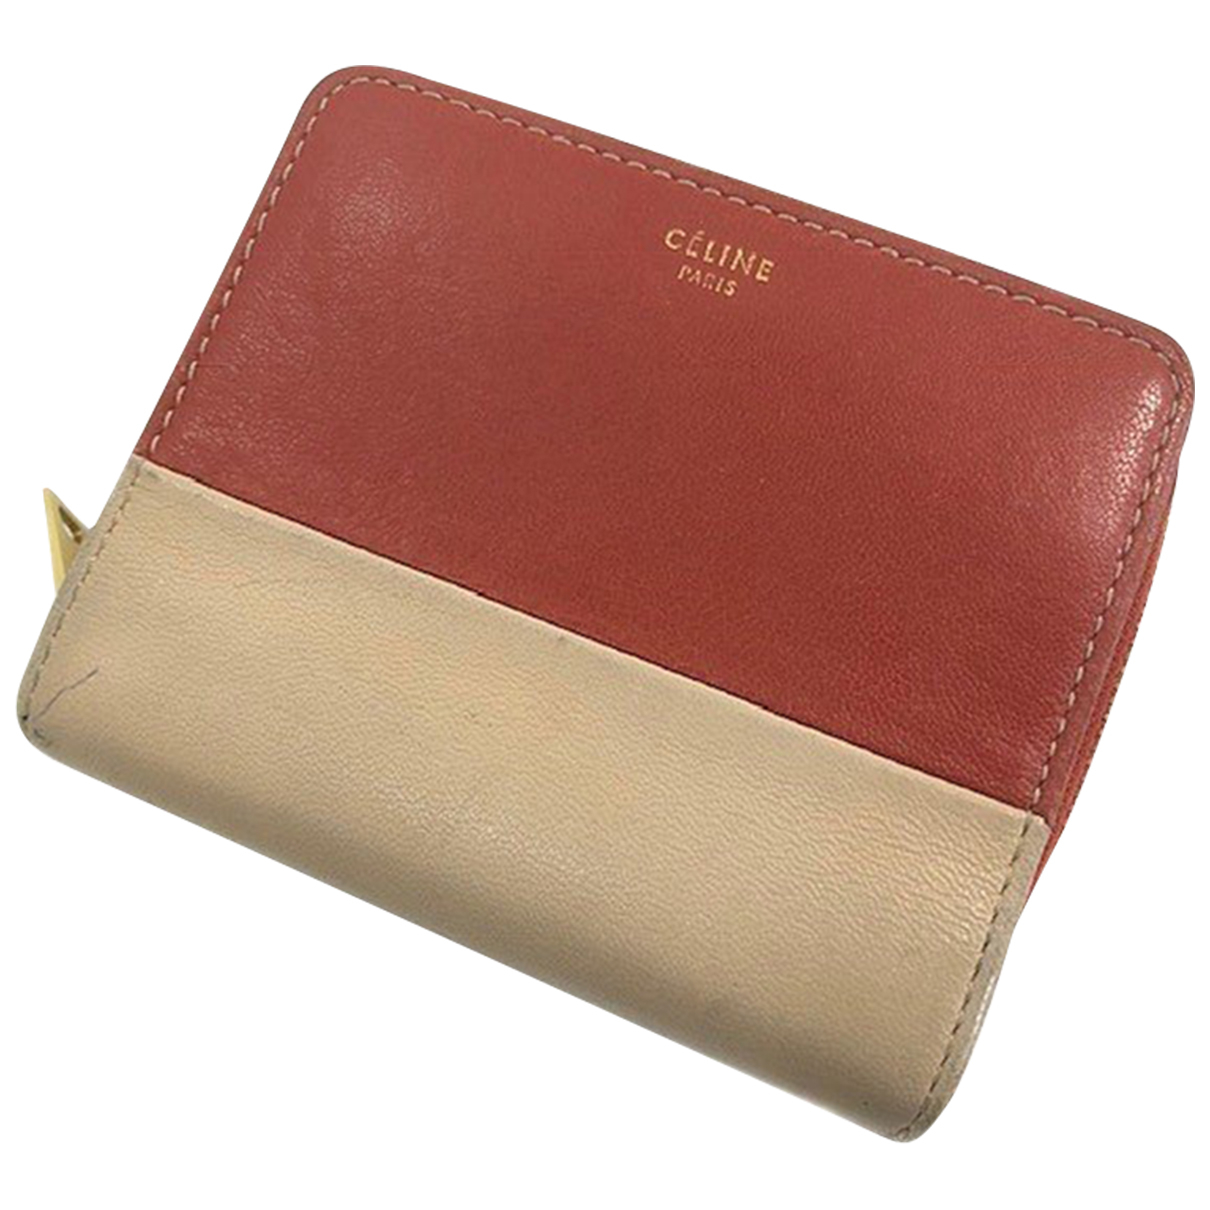 Celine \N Red Leather wallet for Women \N